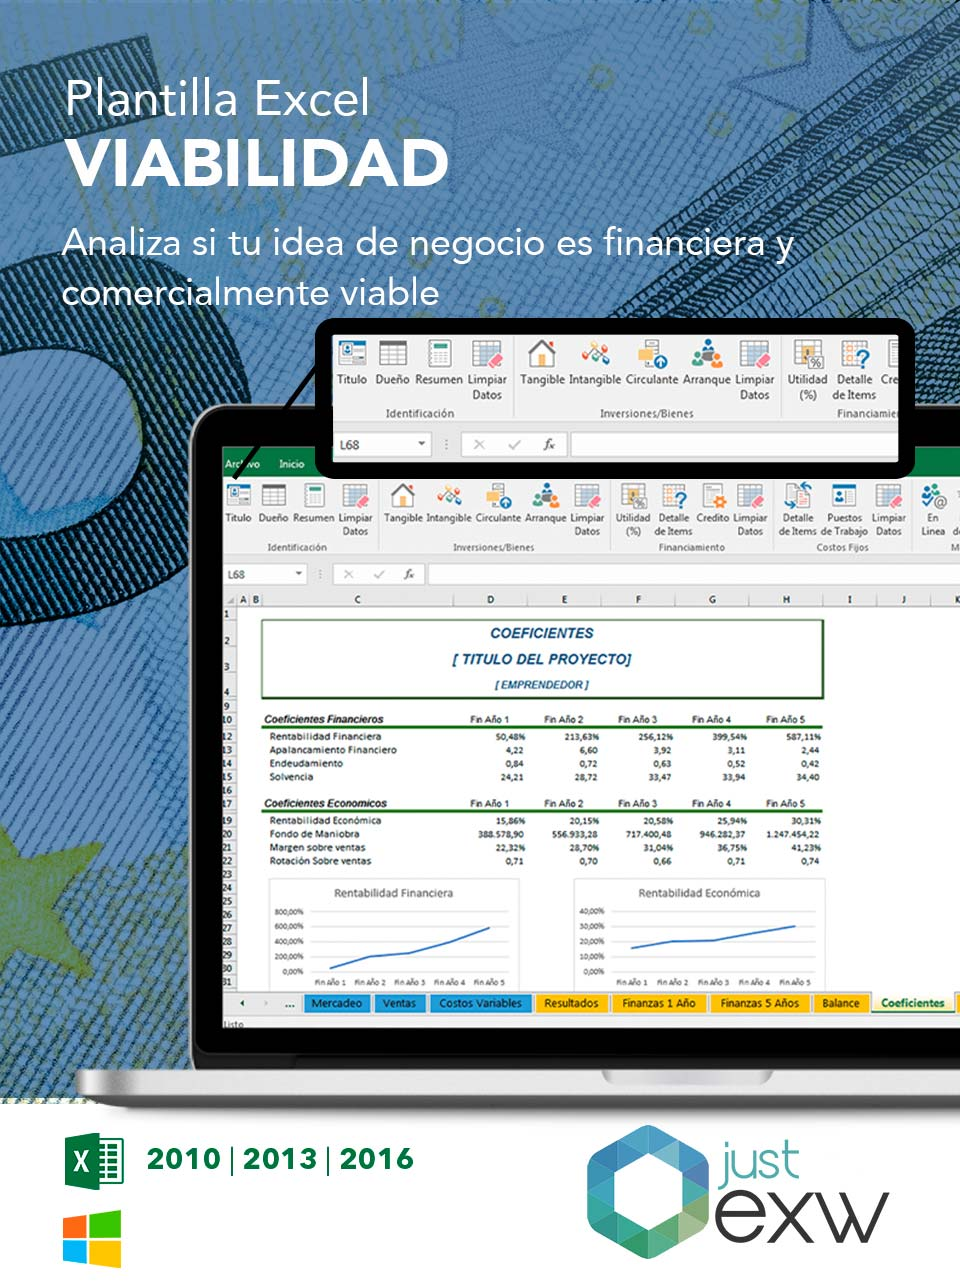 Plantilla para un plan de negocio en Excel | Business Plan